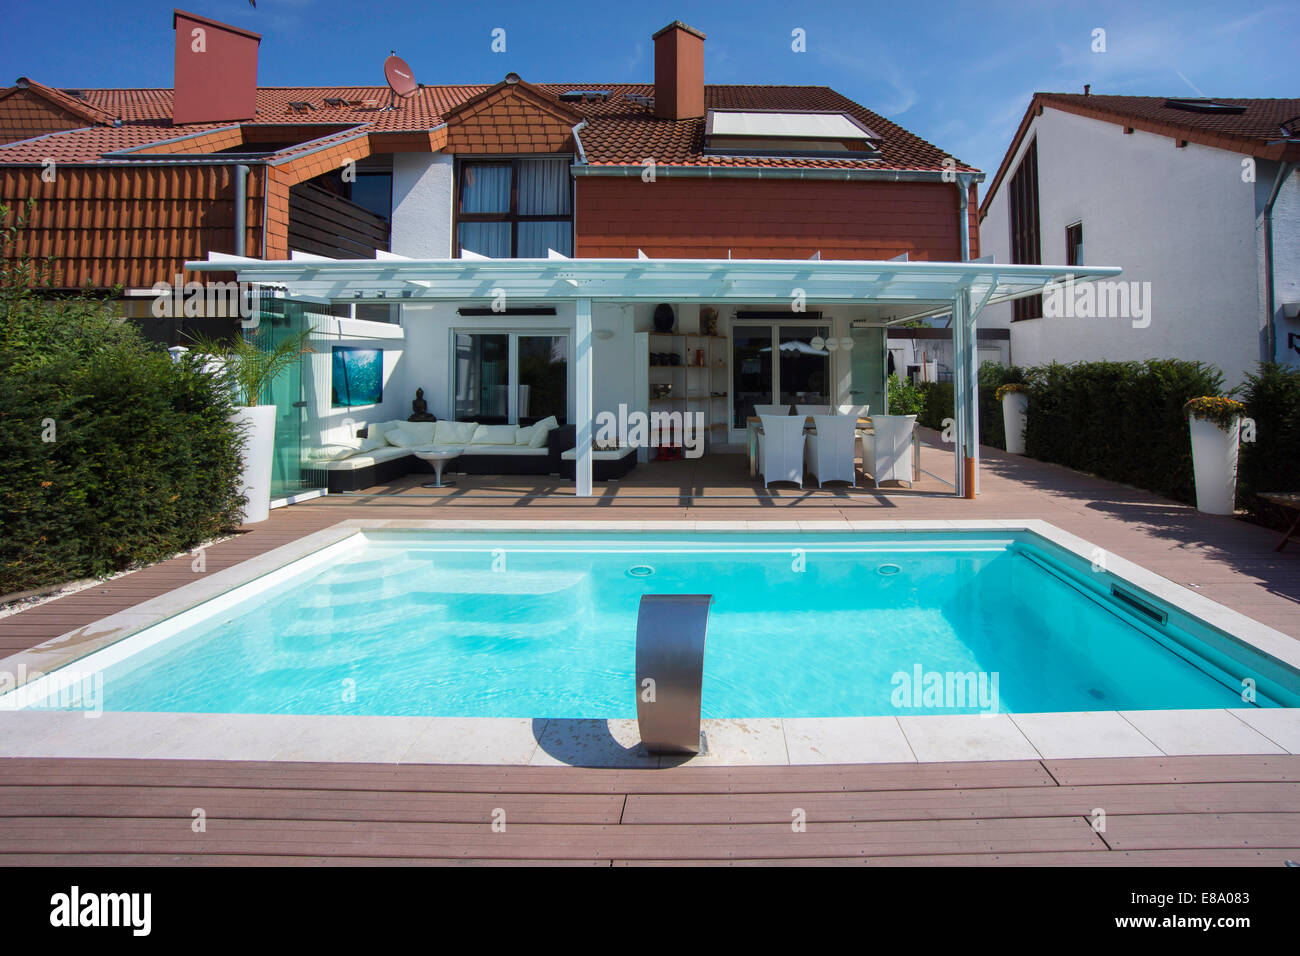 private terraced house with a conservatory a pool and a terrace stock photo 73978467 alamy. Black Bedroom Furniture Sets. Home Design Ideas